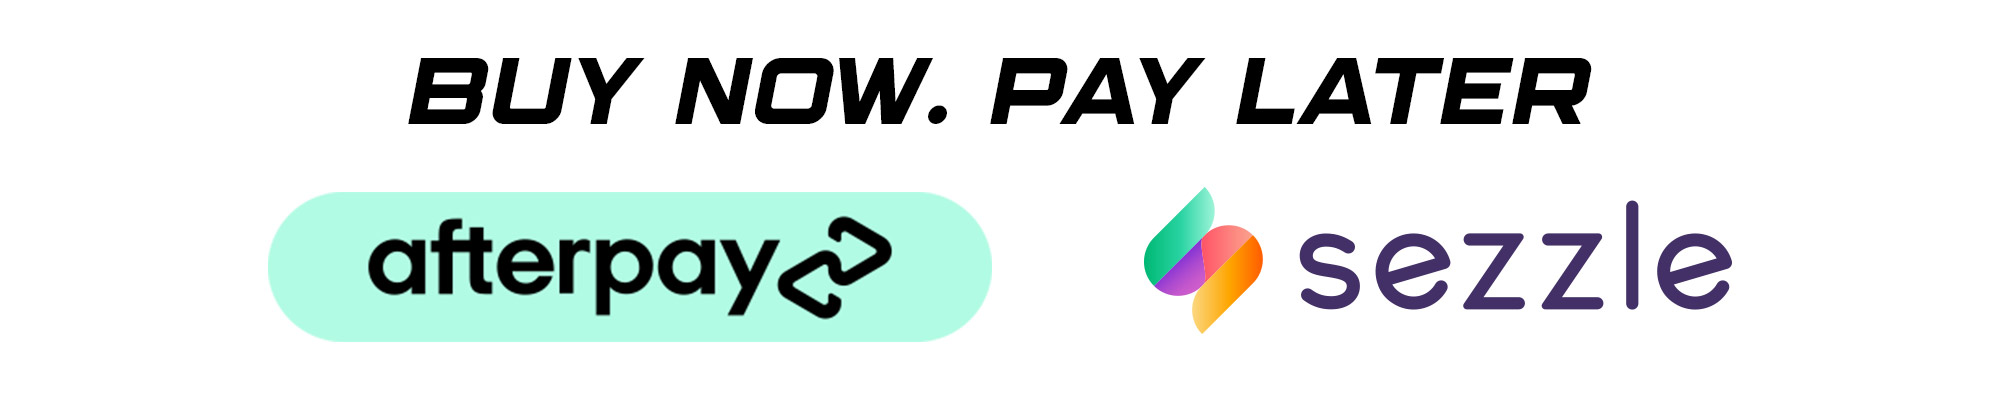 Sezzle - Buy Now, pay later Desktop